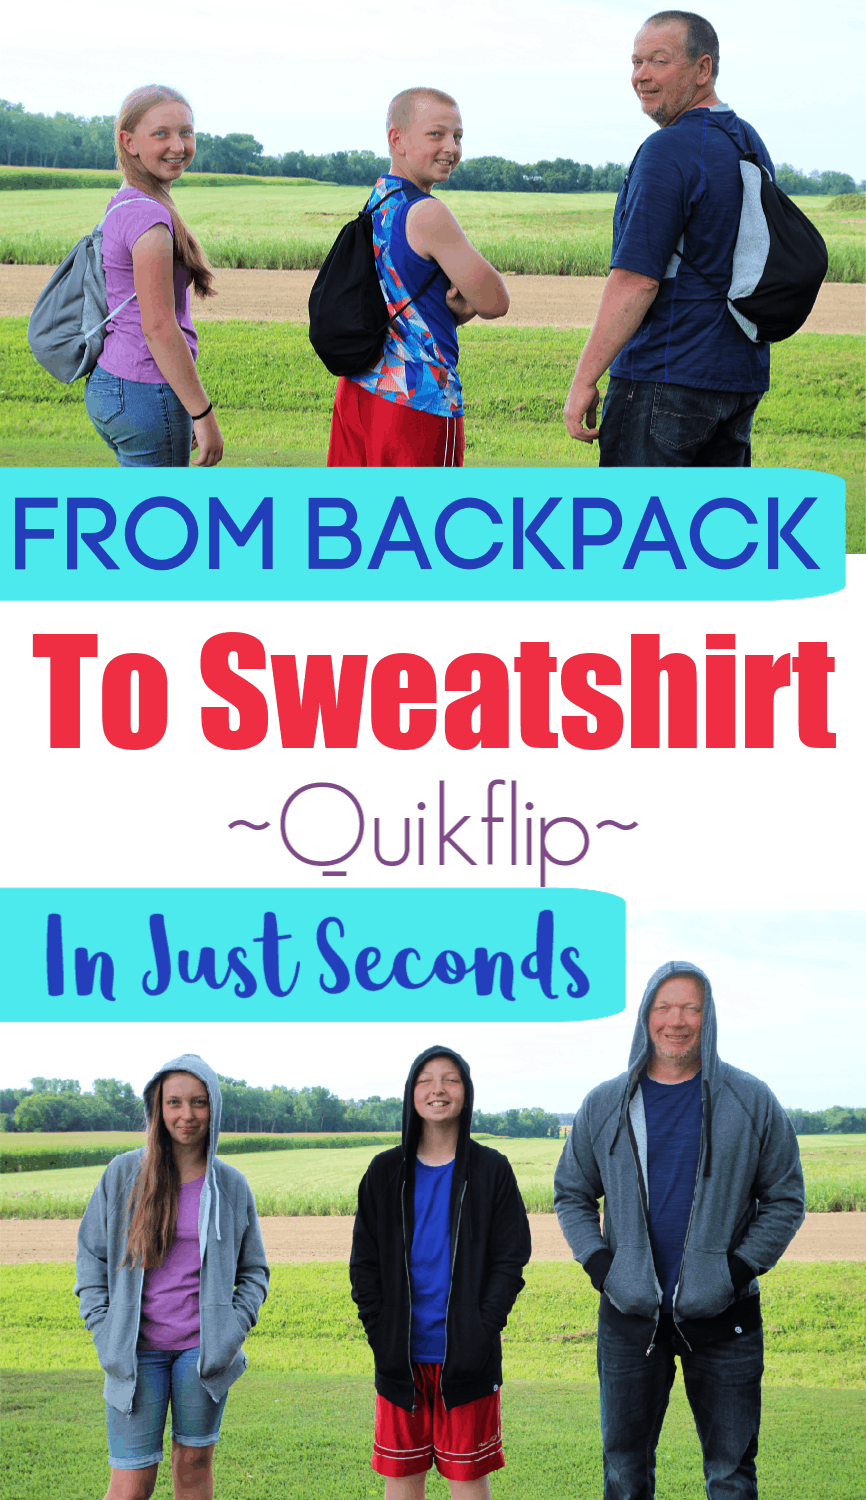 Quikflip Sweatshirt Review - You Will NOT Believe What This Sweatshirt Can Do!